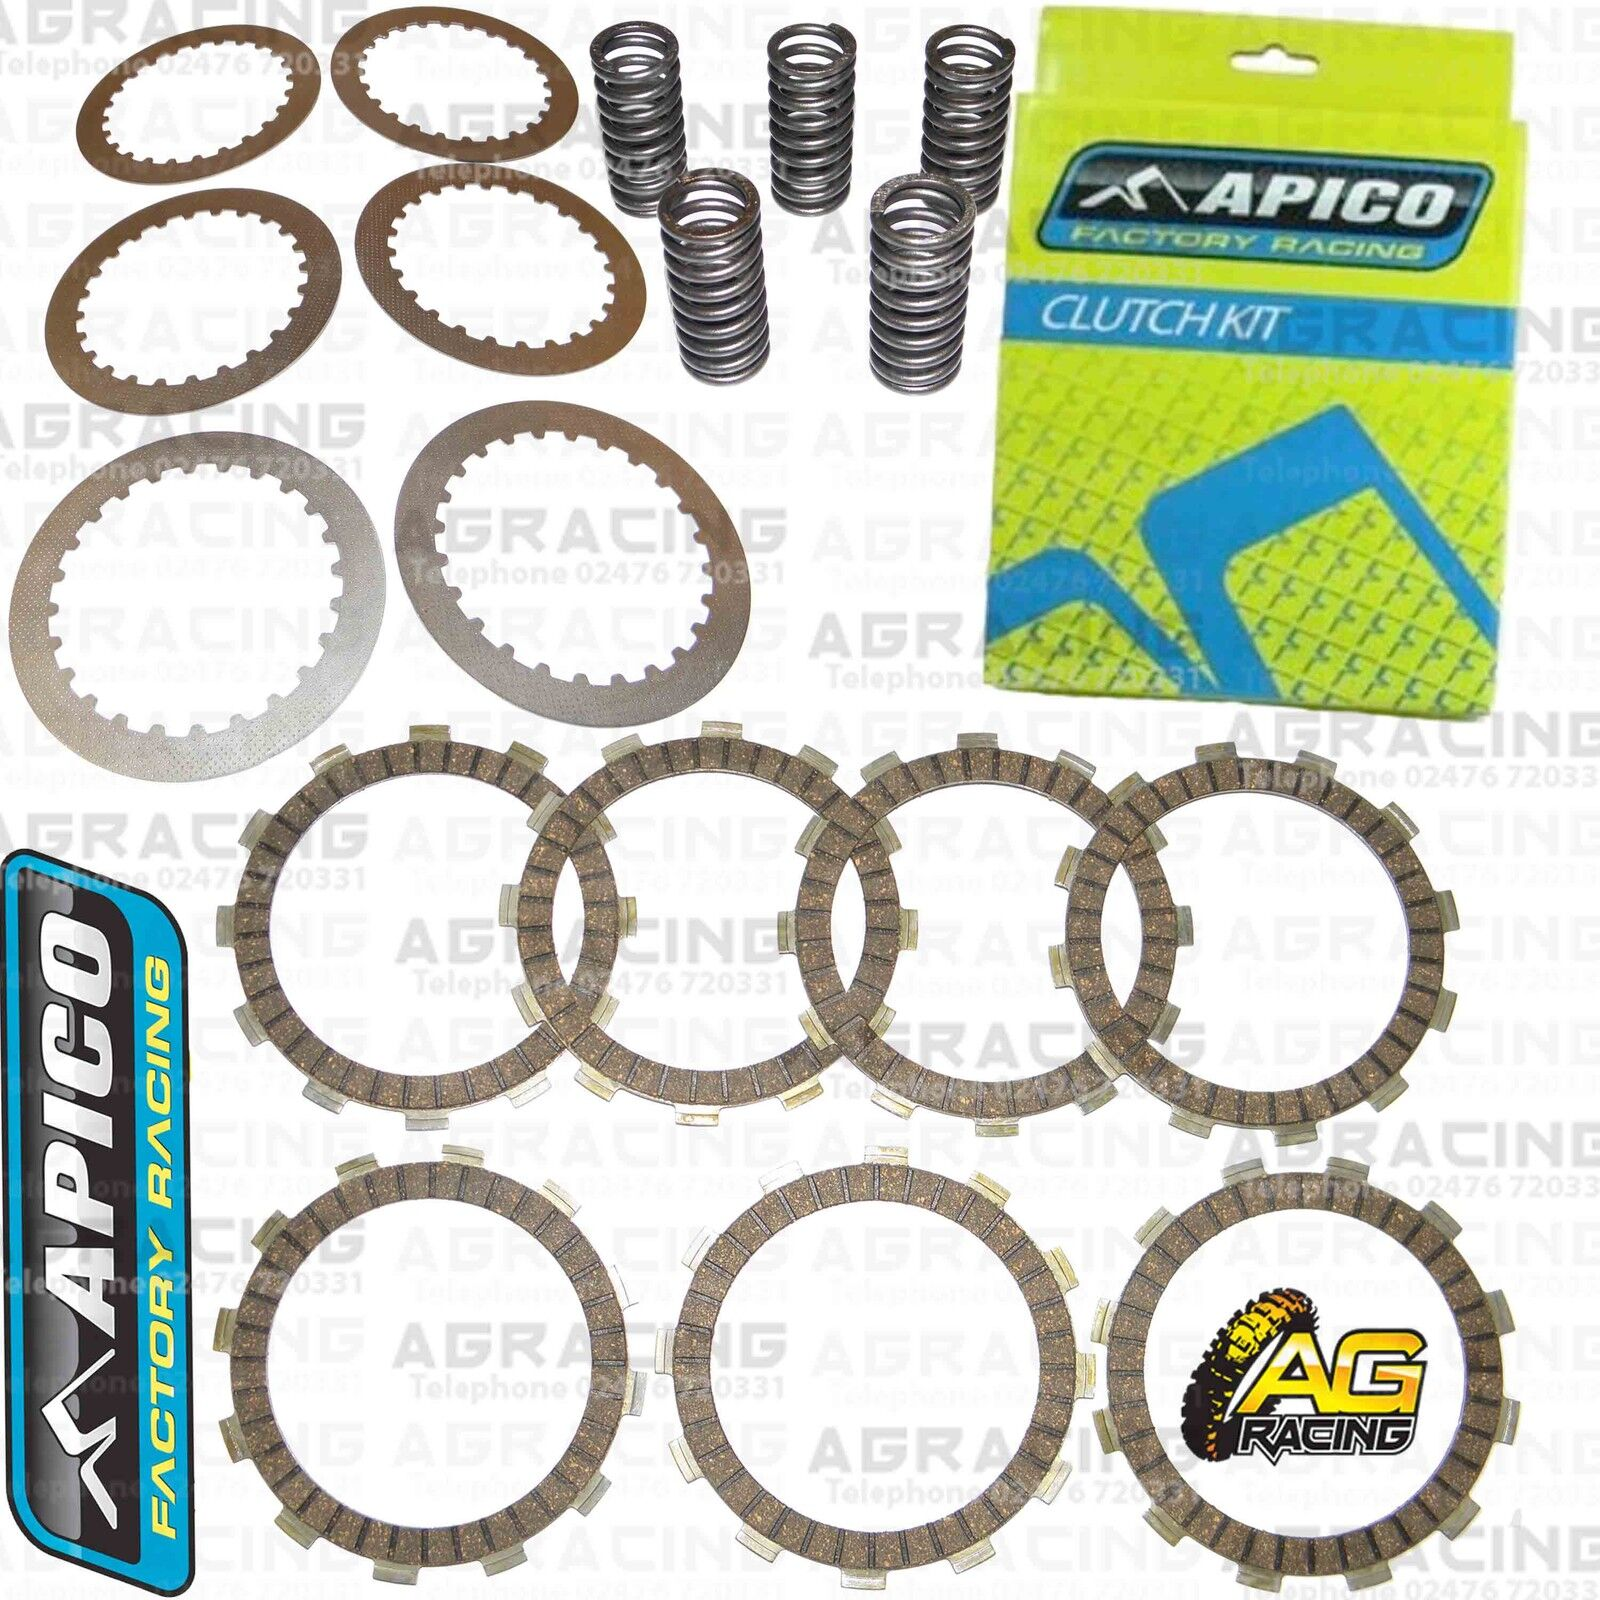 Apico Clutch Kit Steel Friction Plates /& Springs For KTM EXC 200 2007 Enduro